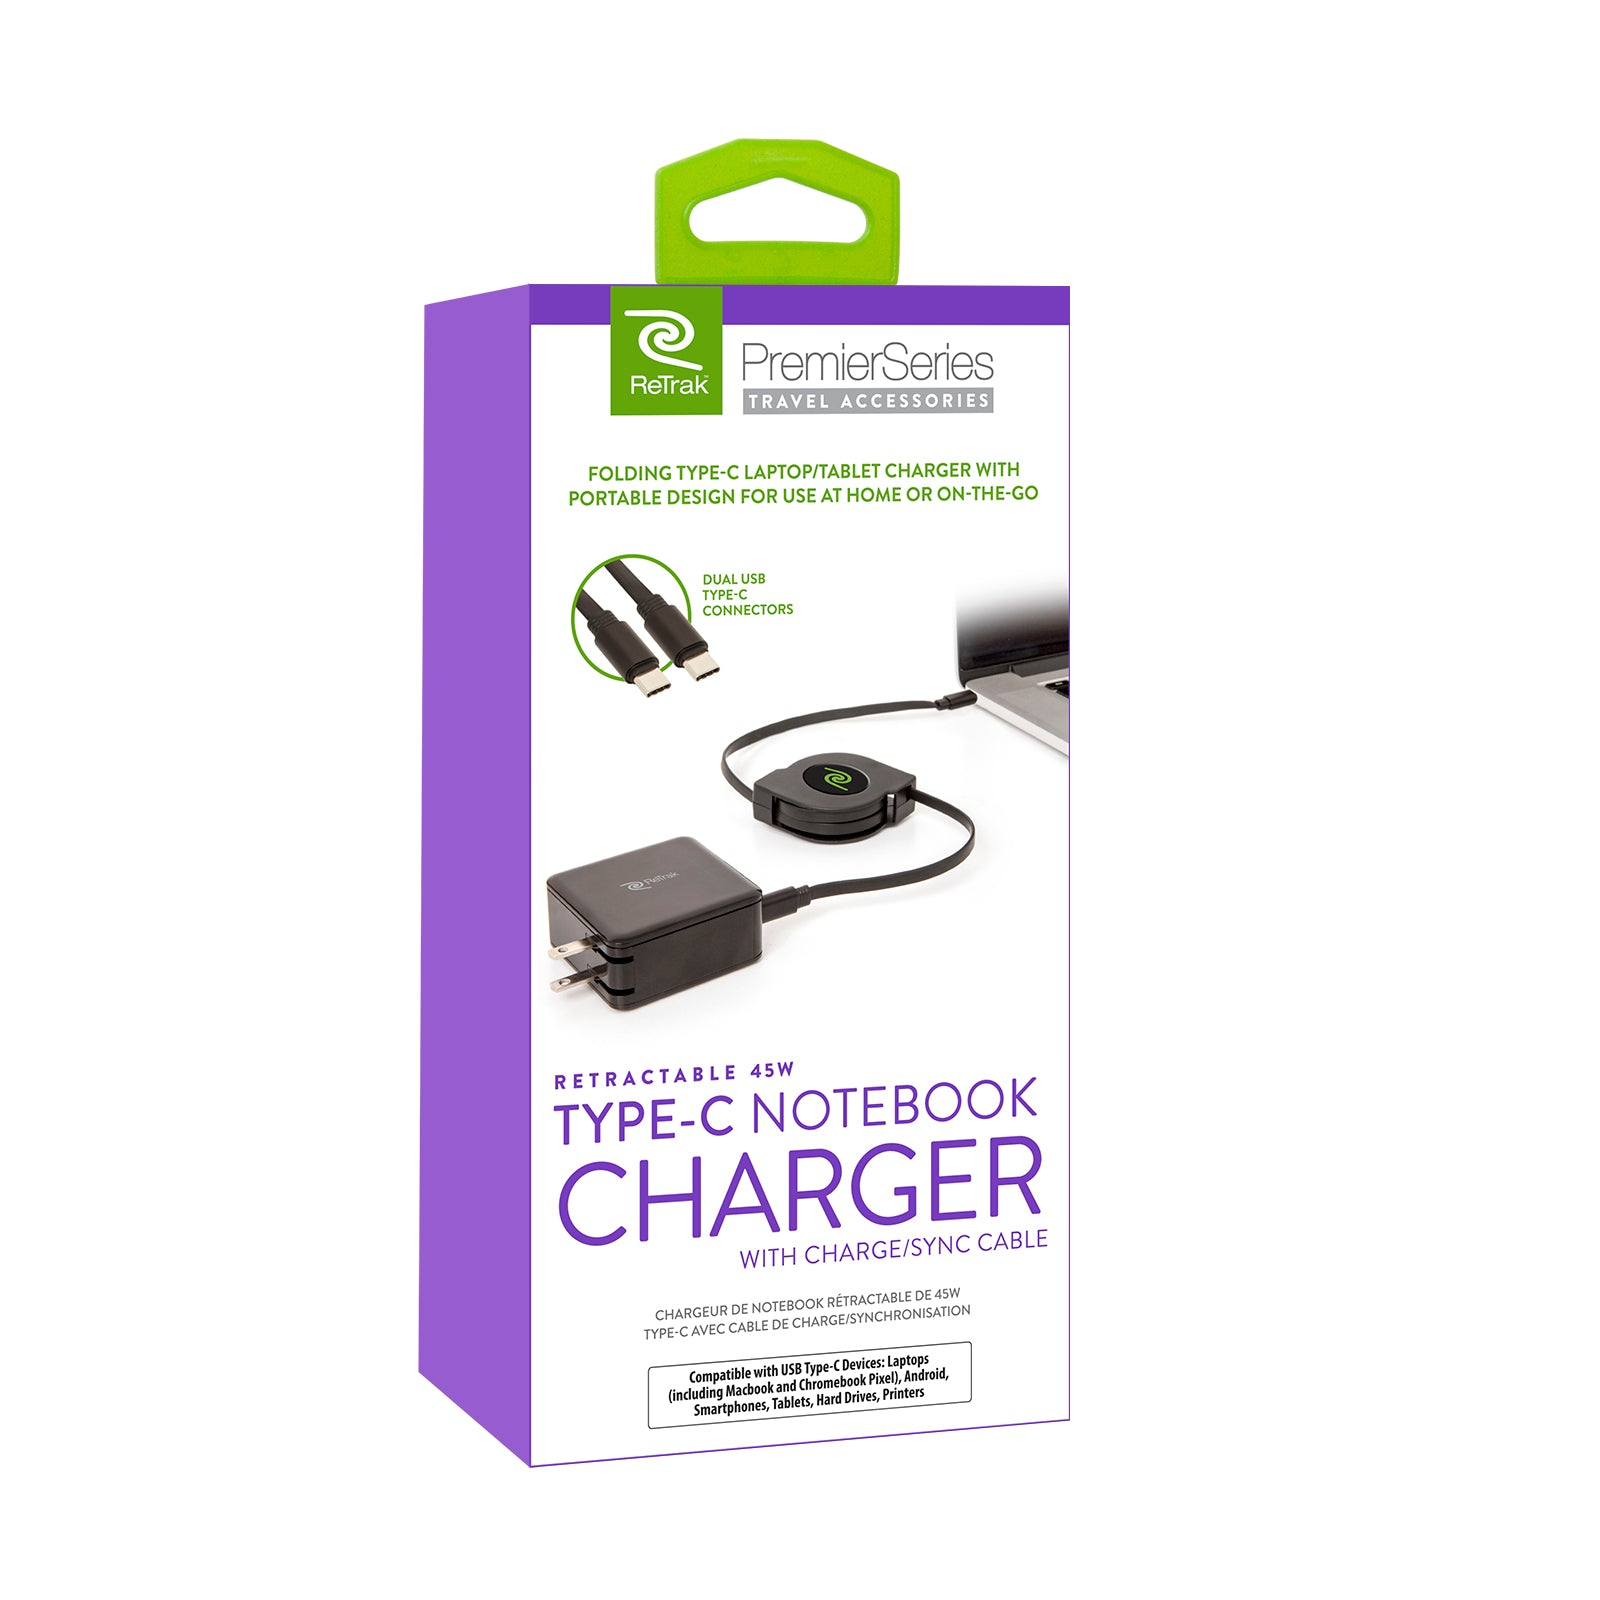 USB-C Notebook Charger | 45W Retractable Charger Cable